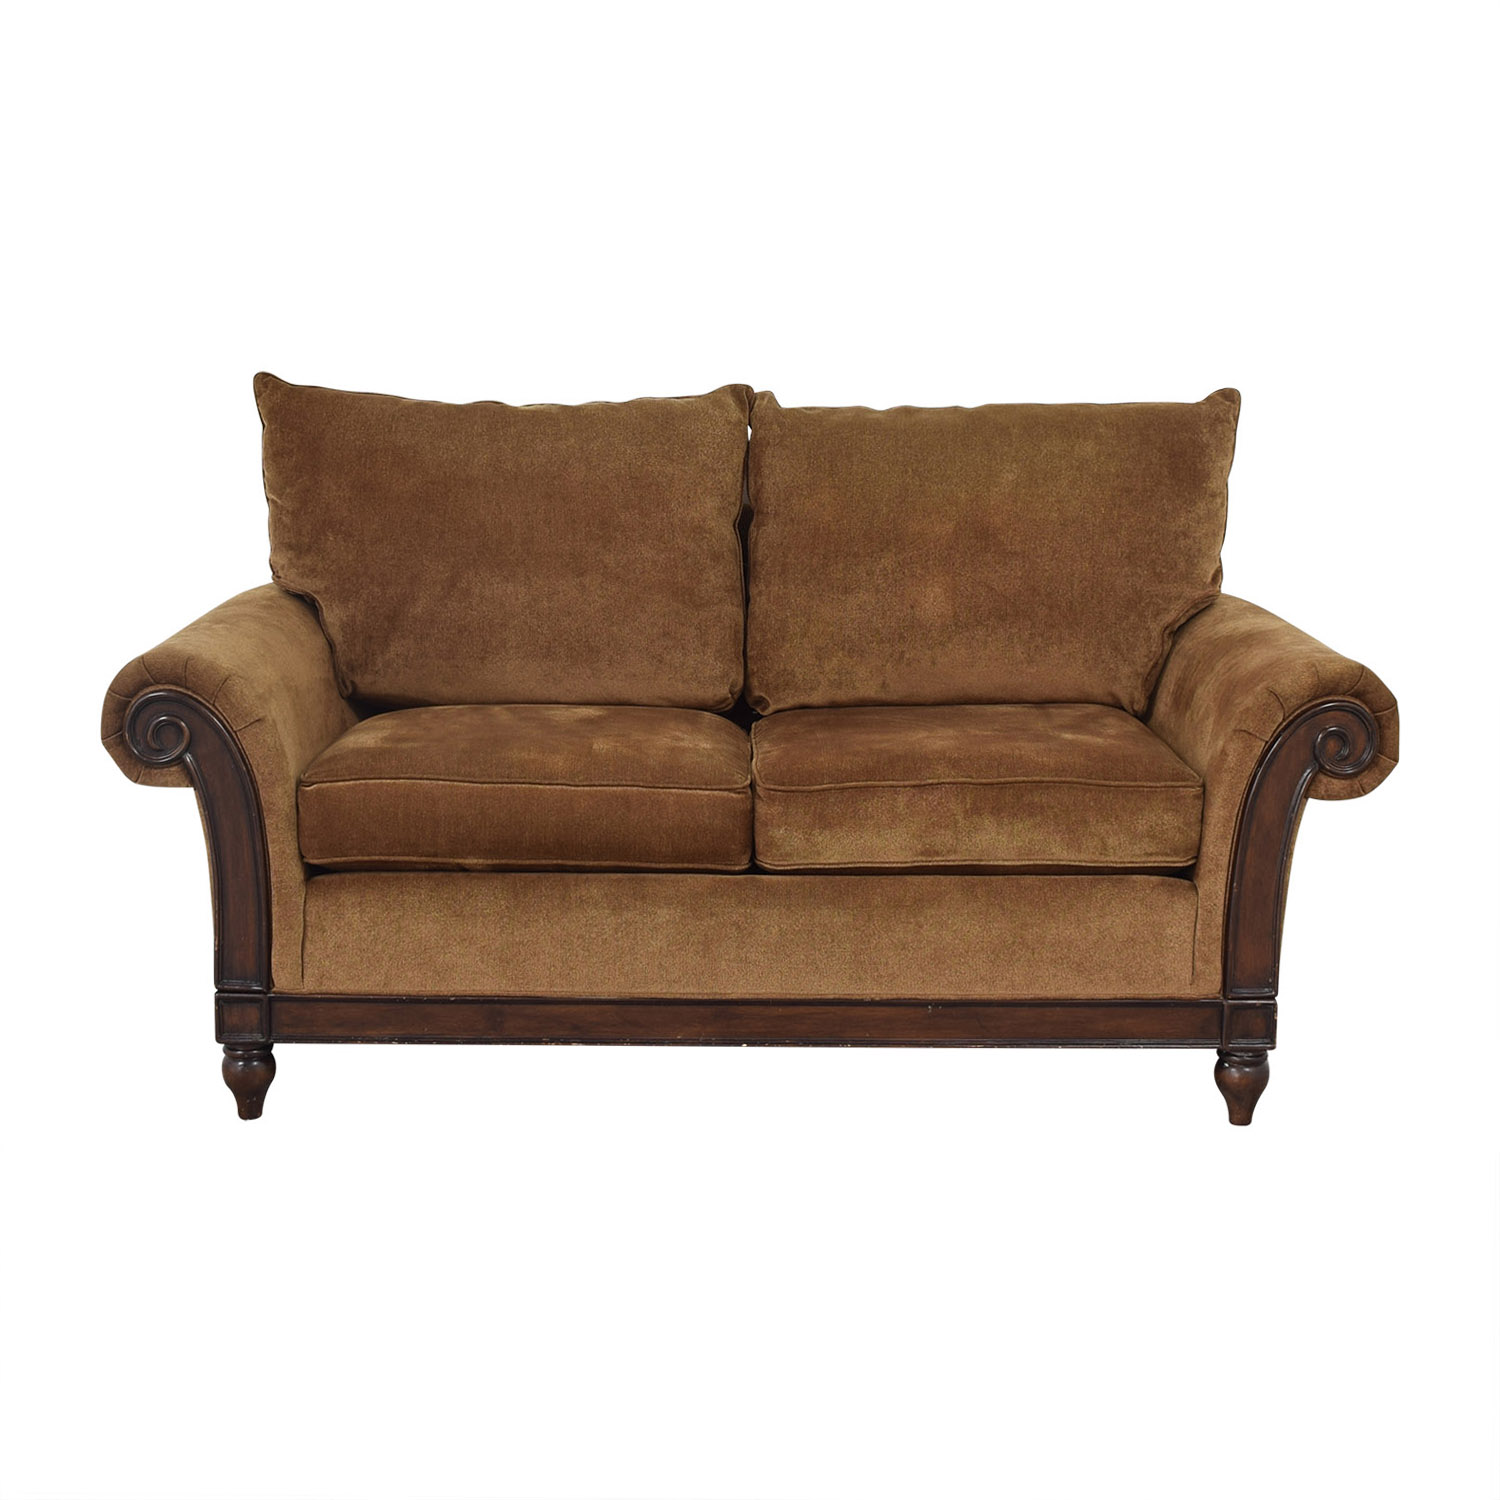 Thomasville Thomasville Roll Arm Loveseat price